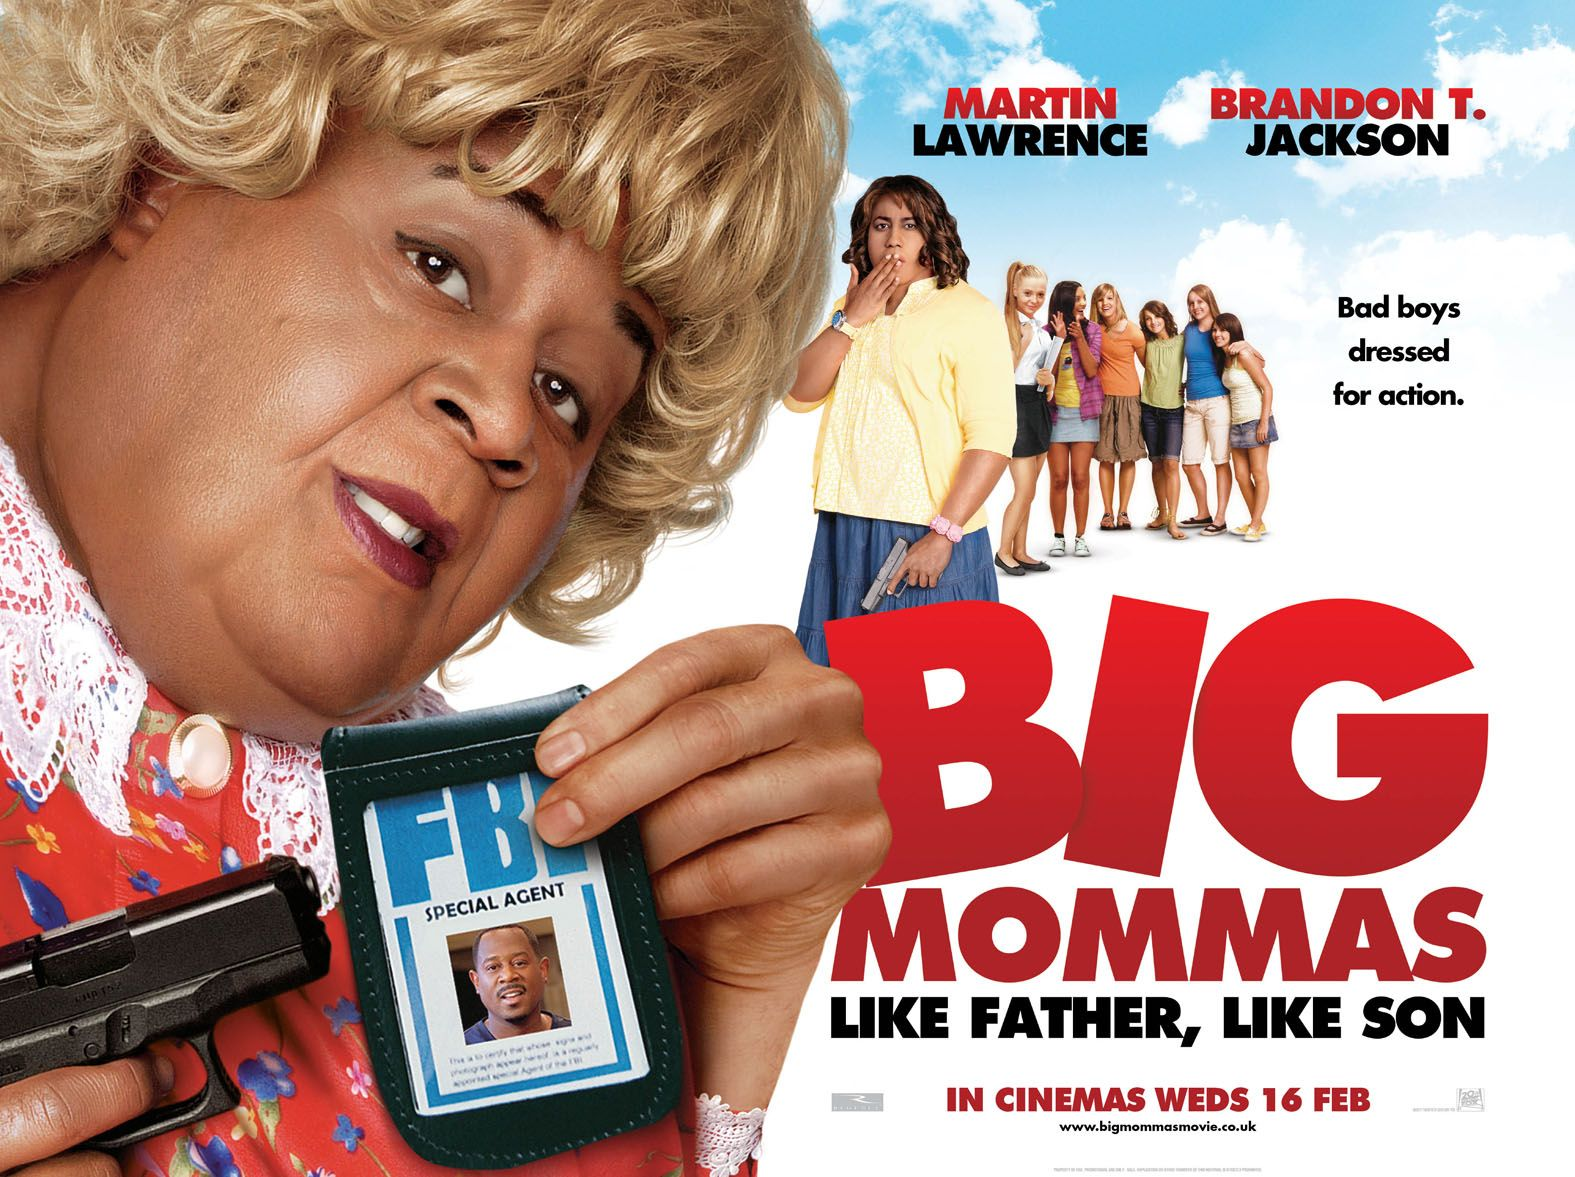 Big Mommas 3 Good Funny Movies Comedy Movies New Comedy Movies